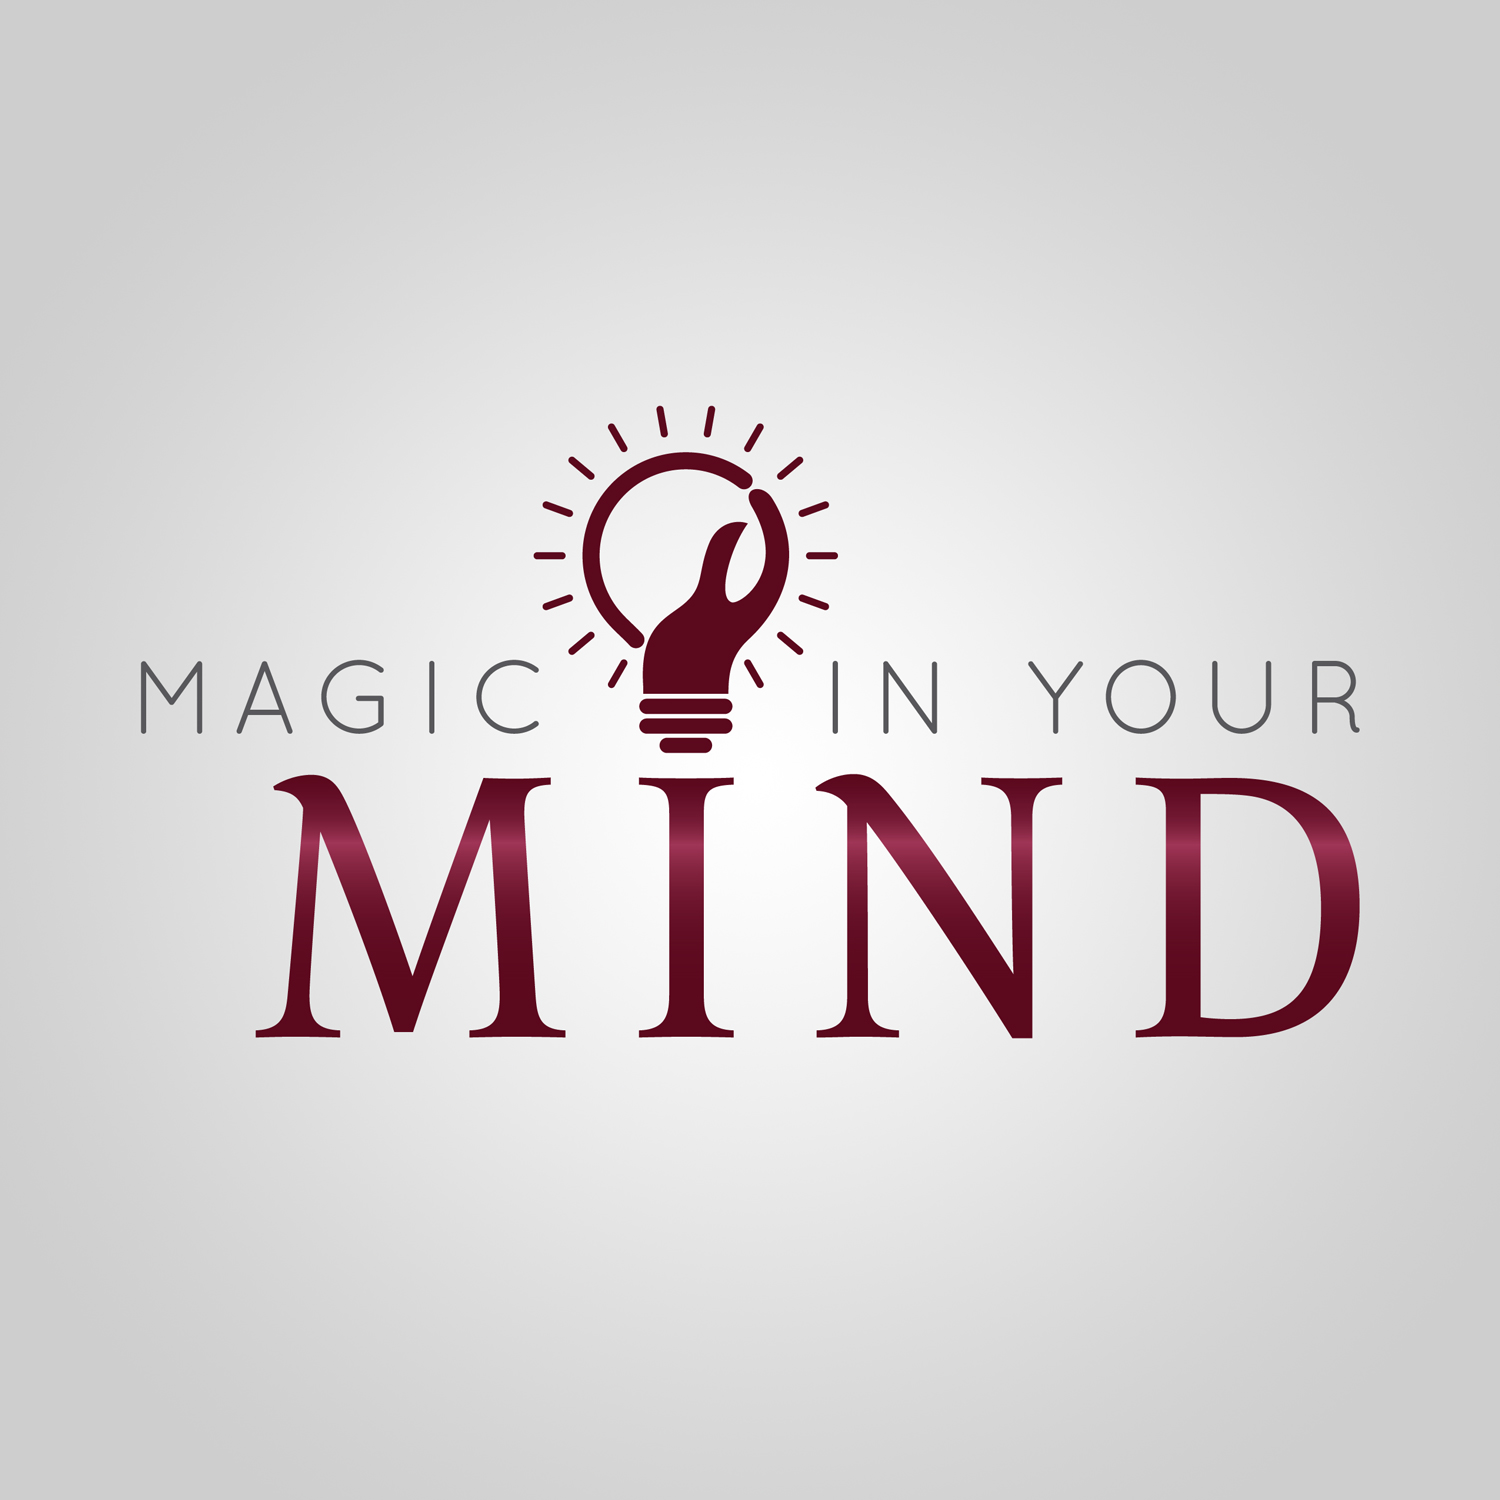 Learn to Harness the Magic that's Already in Your Mind